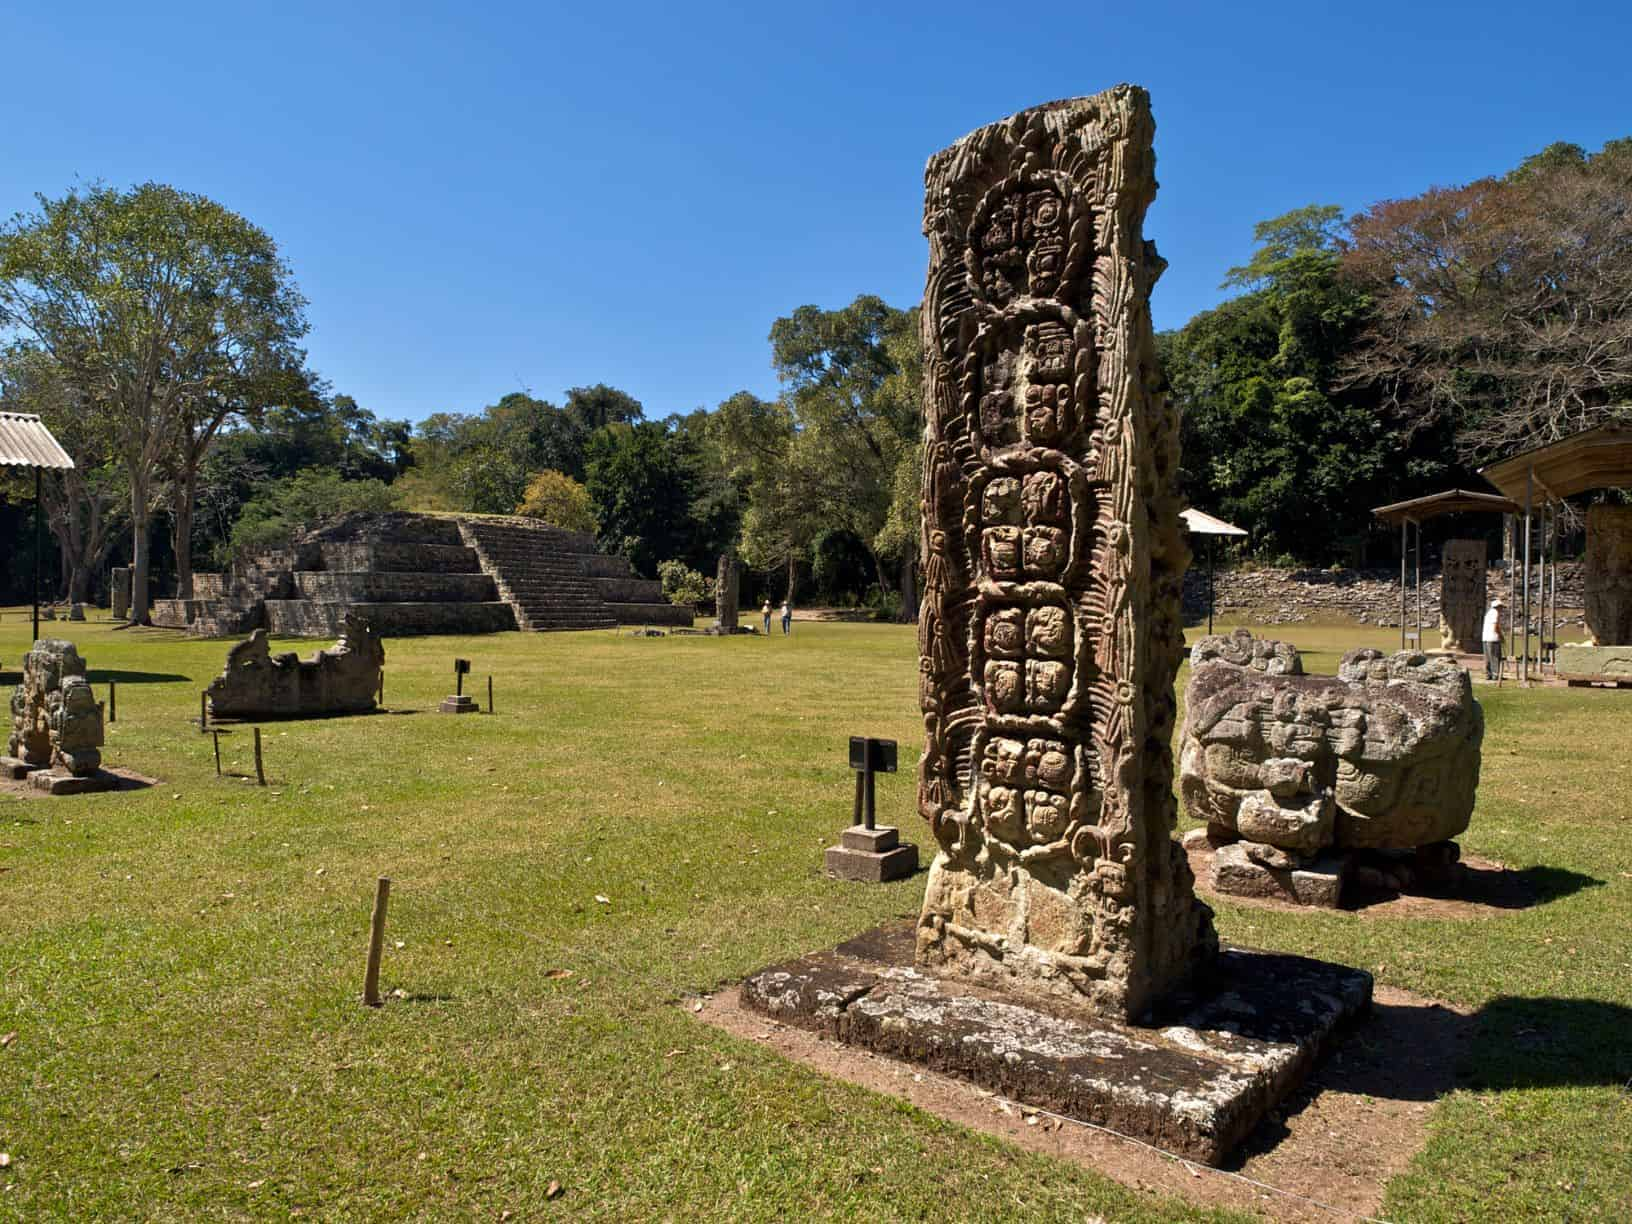 View of the Mayan ruins in Copan Honduras